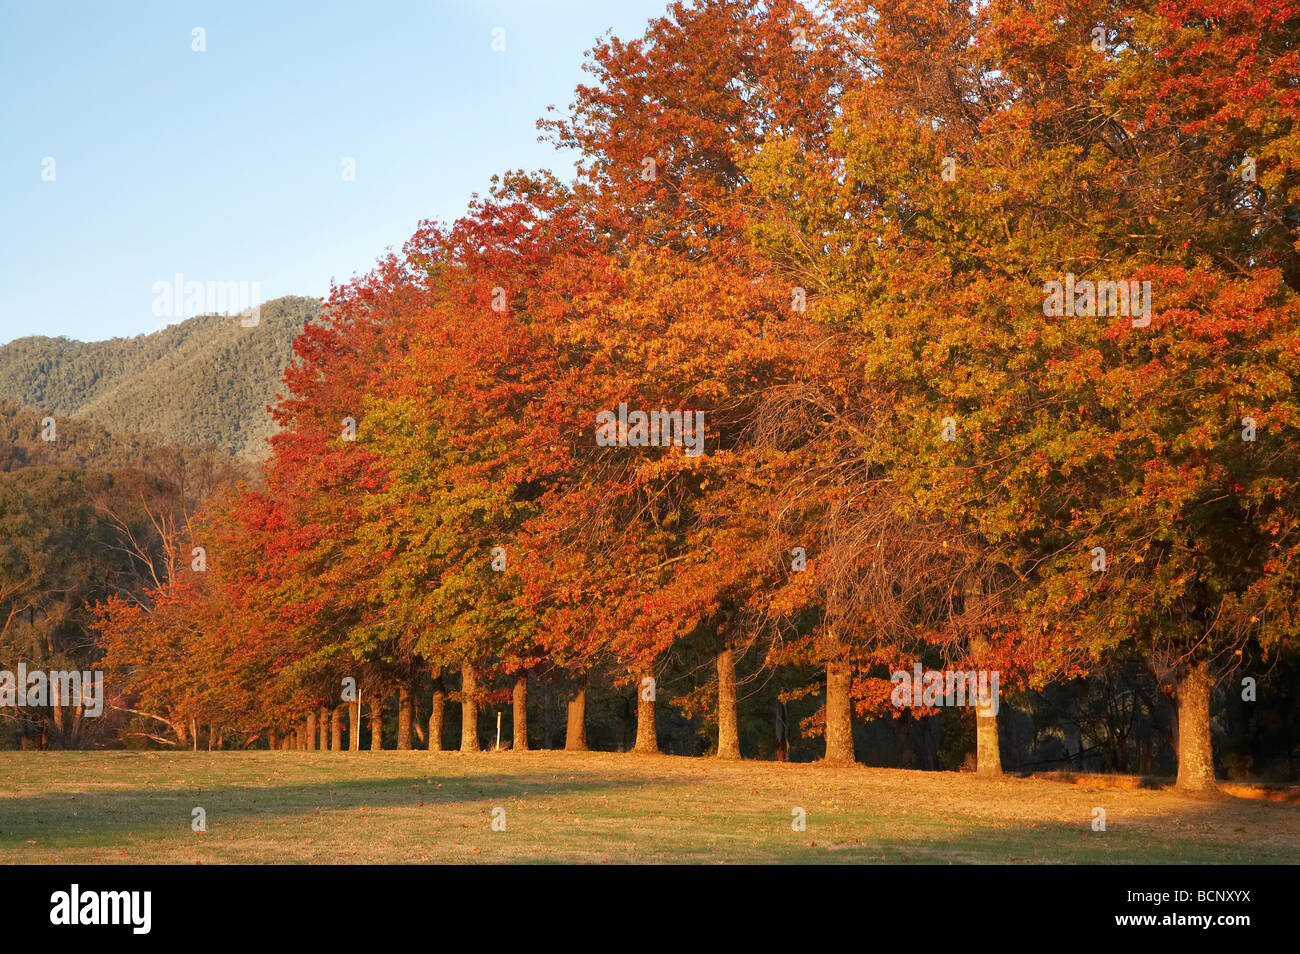 Autumn Trees Khancoban Snowy Mountains Southern New South Wales Australia - Stock Image